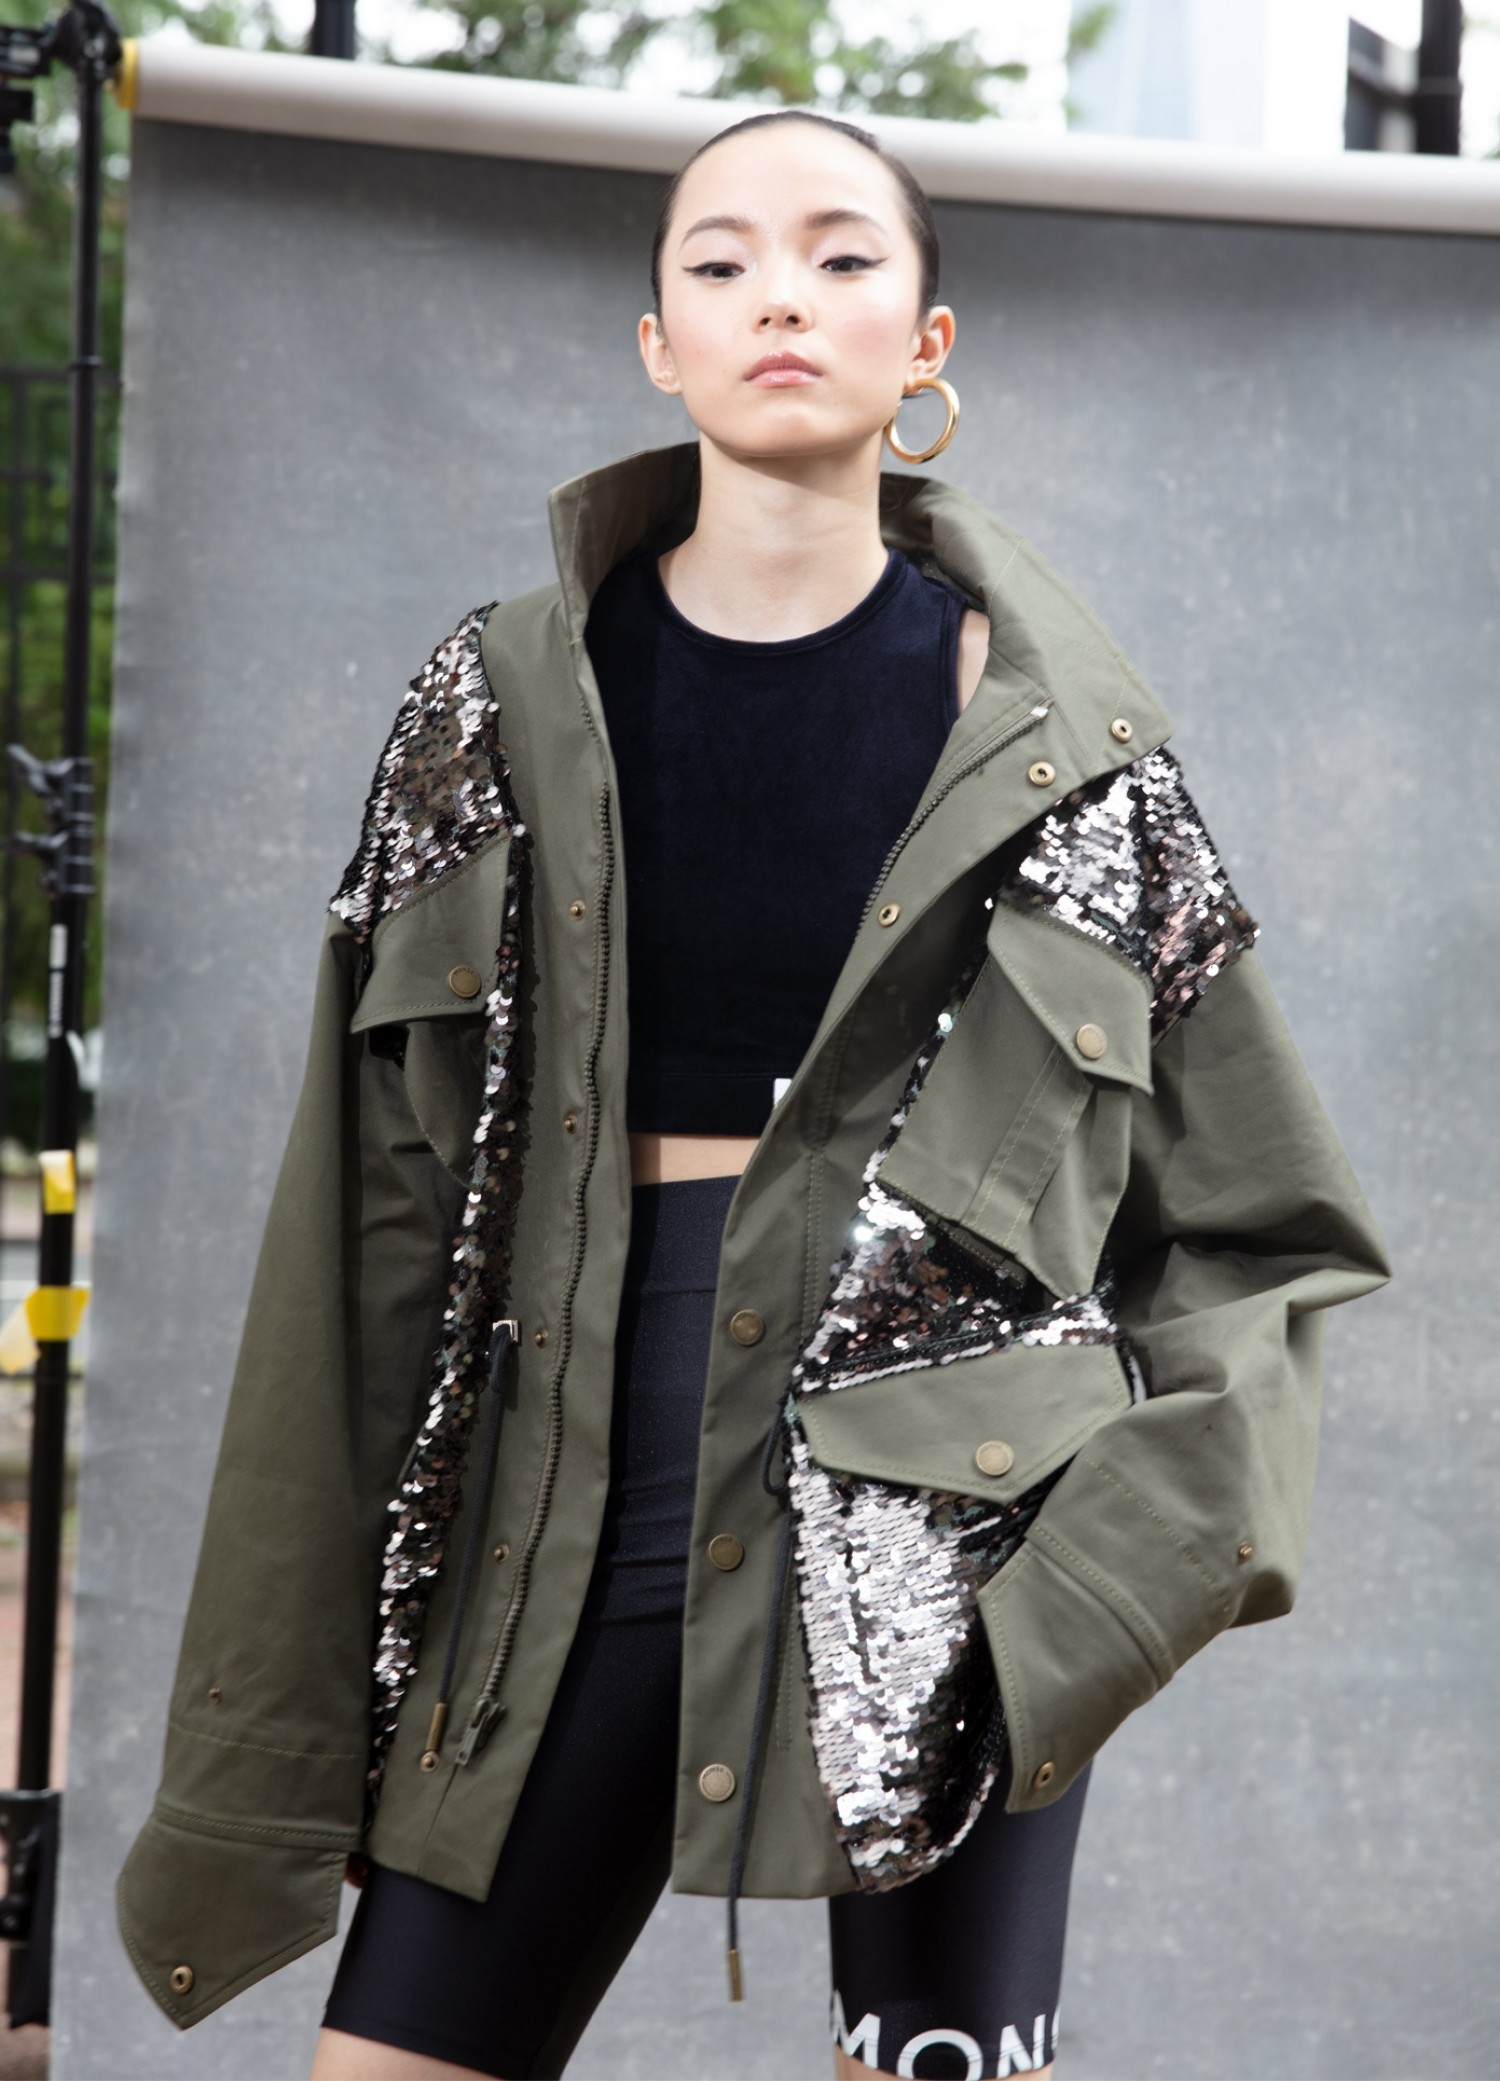 MONSE Sequined Field Jacket in Olive and Taupe on Model Front View